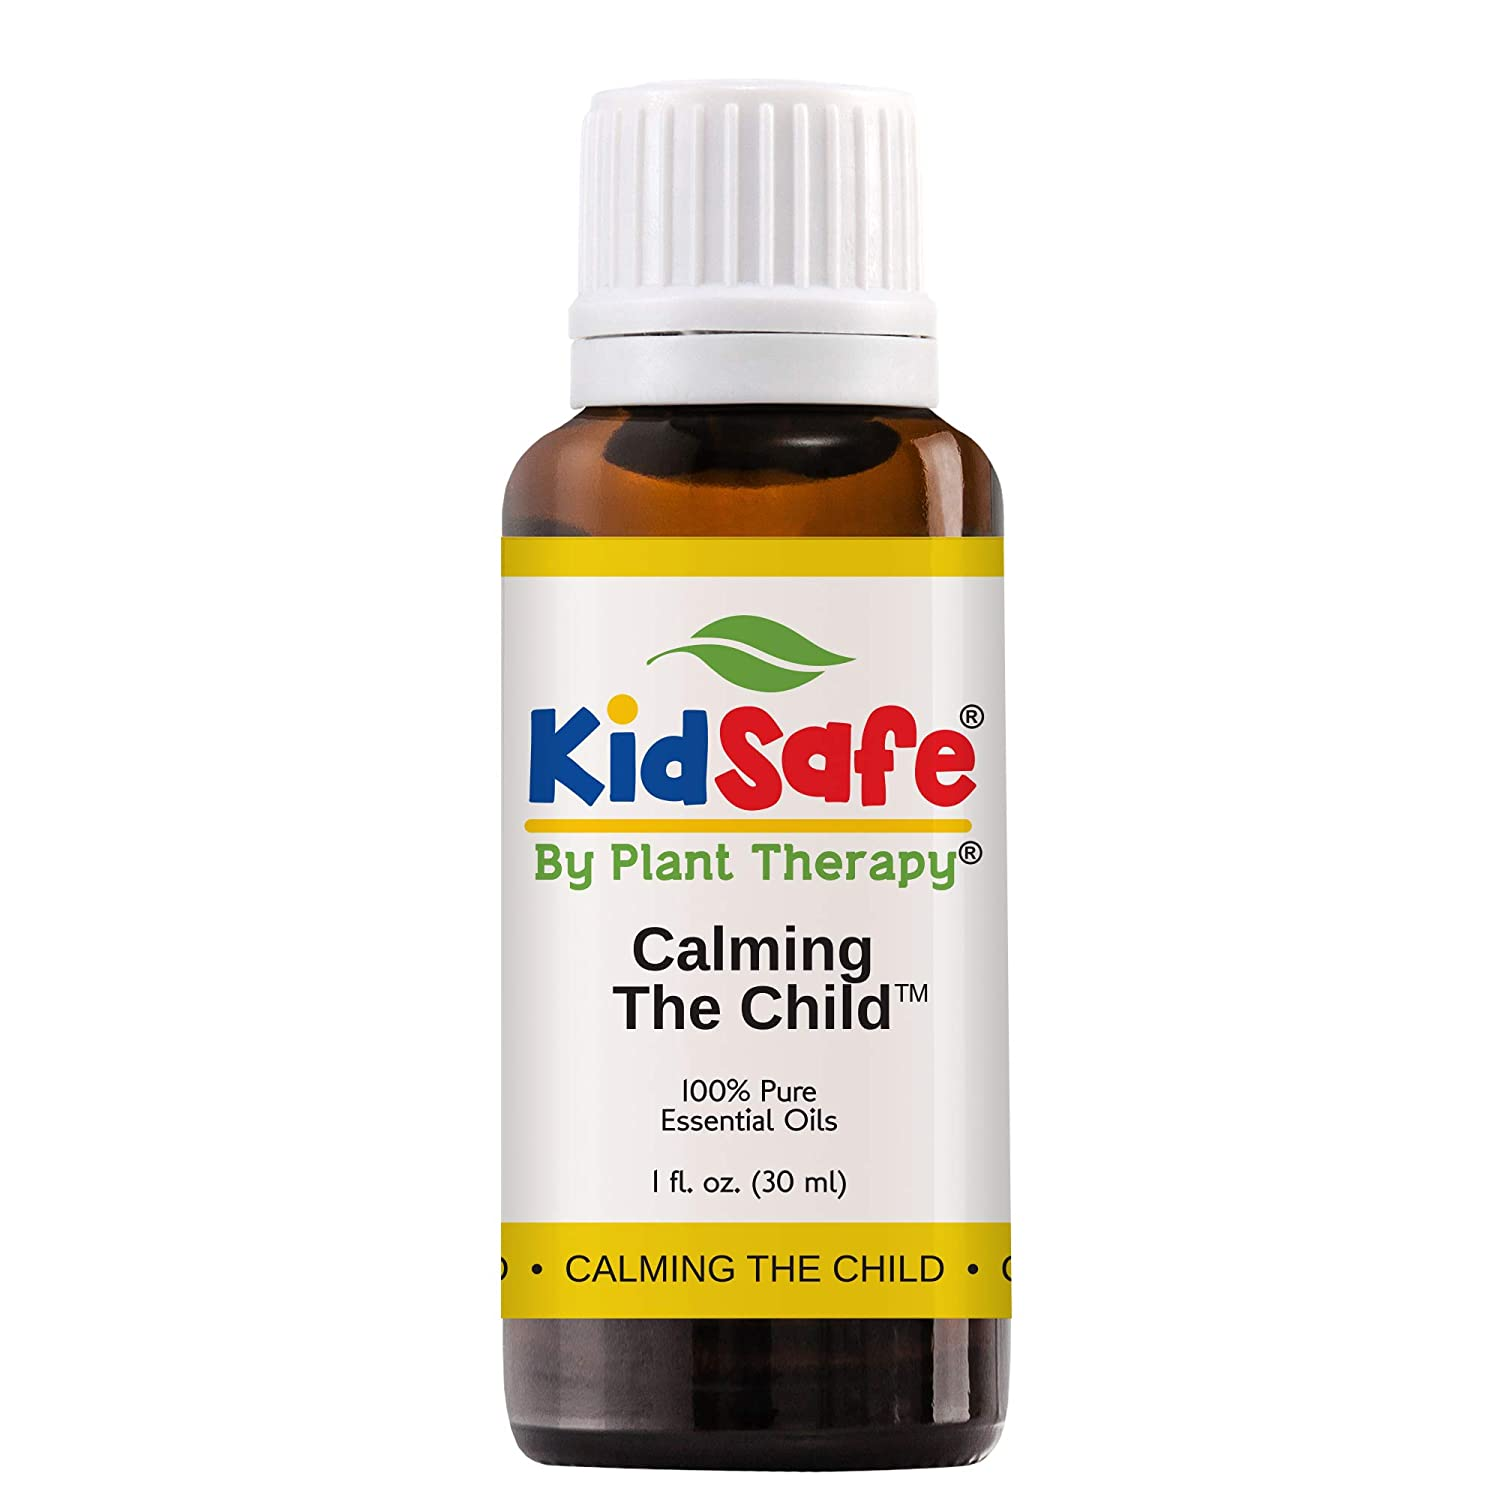 KidSafe Calming the Child Synergy Pre-Diluted Essential Oil Roll-On 10 ml (1/3 fl oz). Ready to use! Plant Therapy Essential Oils